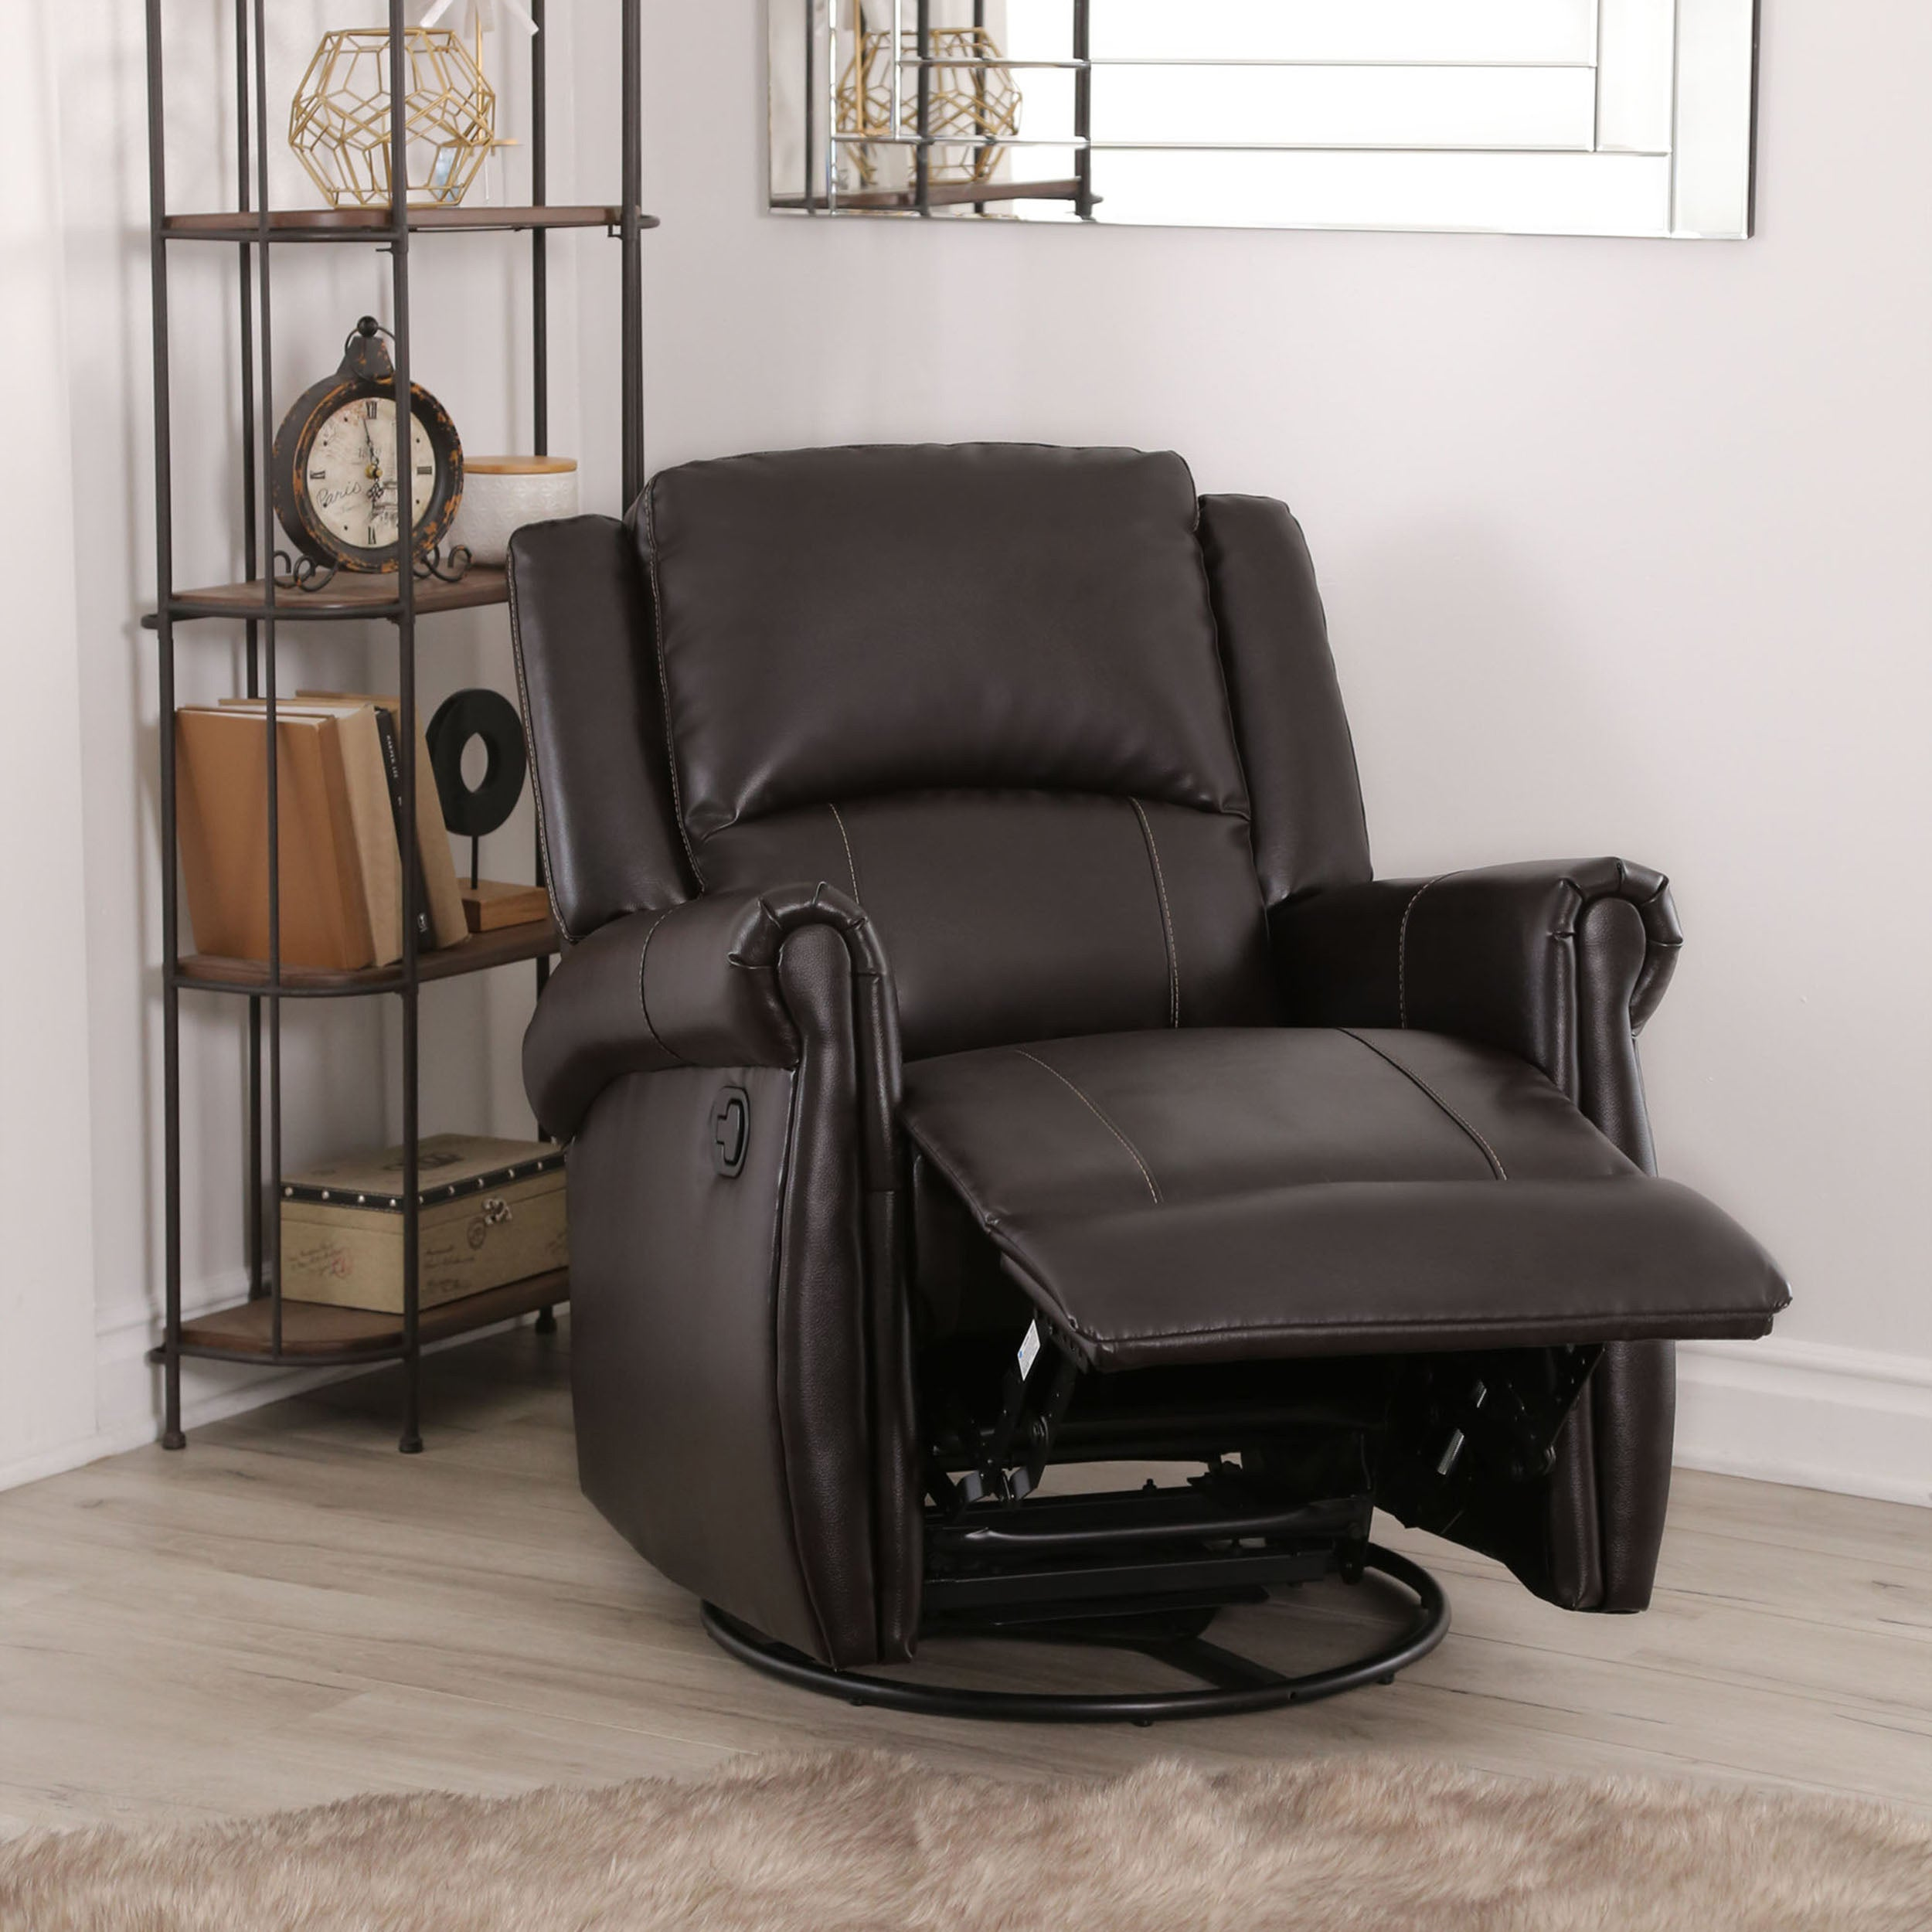 Phenomenal Abbyson Elena Dark Brown Swivel Glider Recliner Chair Gmtry Best Dining Table And Chair Ideas Images Gmtryco